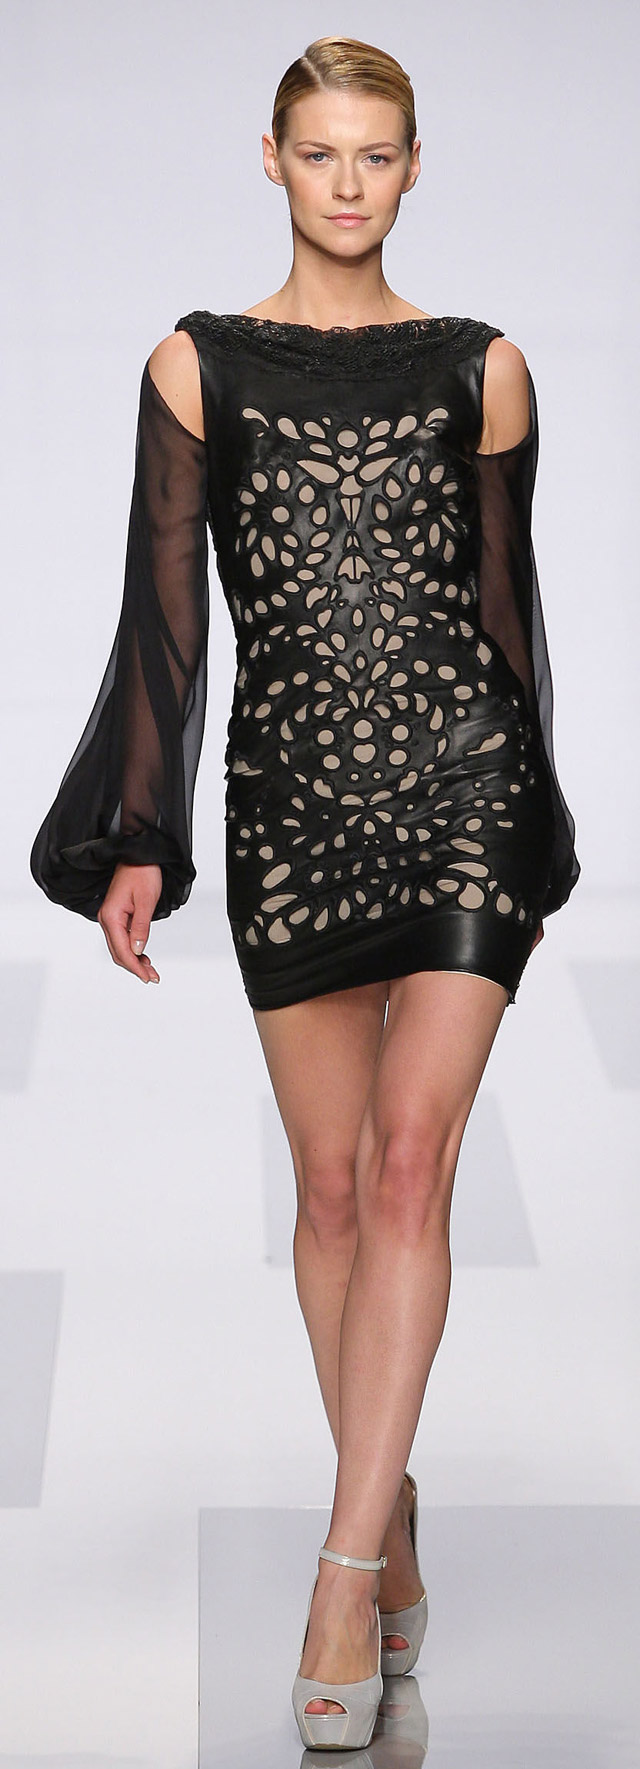 TONY WARD  COUTURE  FALL-WINTER 2013-2014 (12)